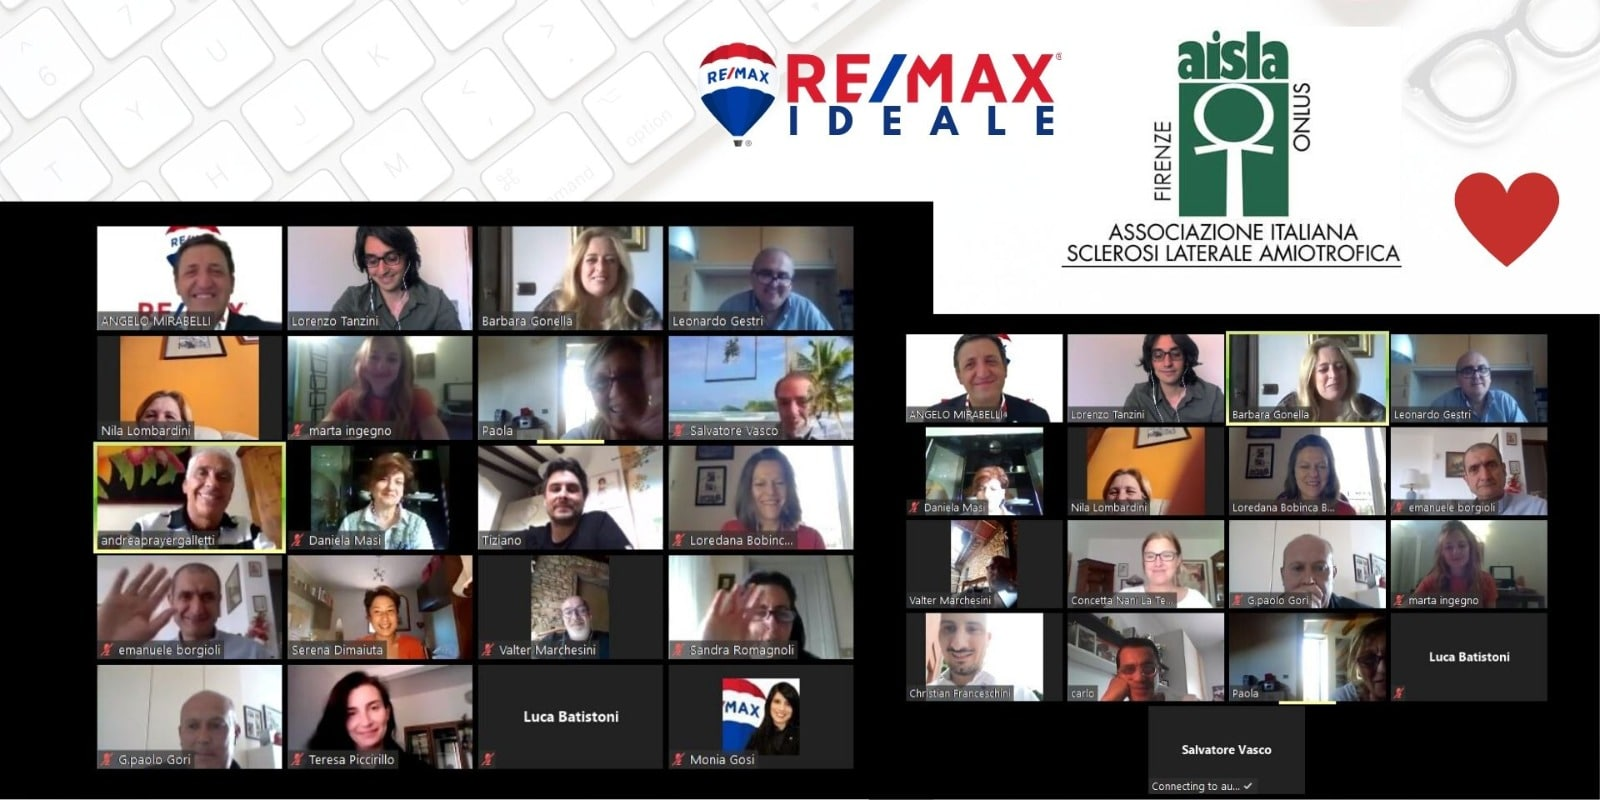 REMAX Ideale - AISLA Firenze